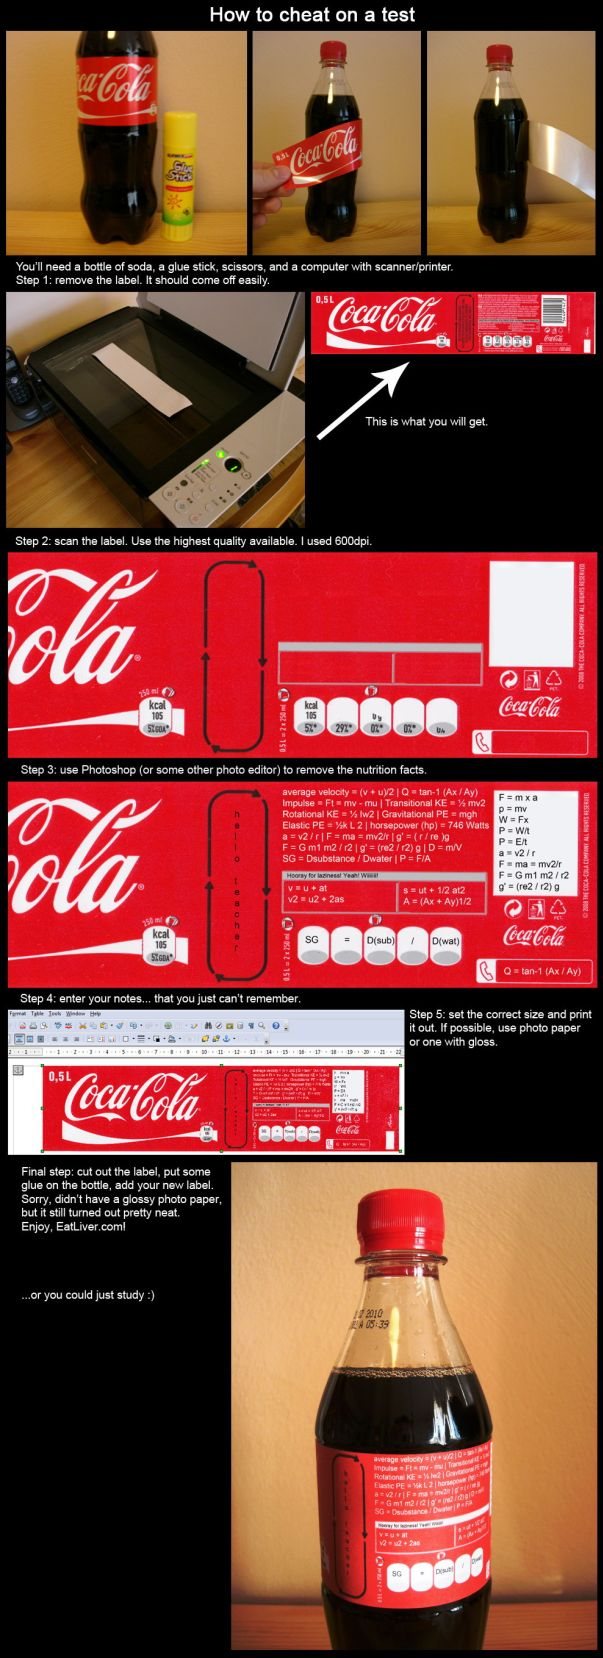 how to cheat on a test with a coke bottle